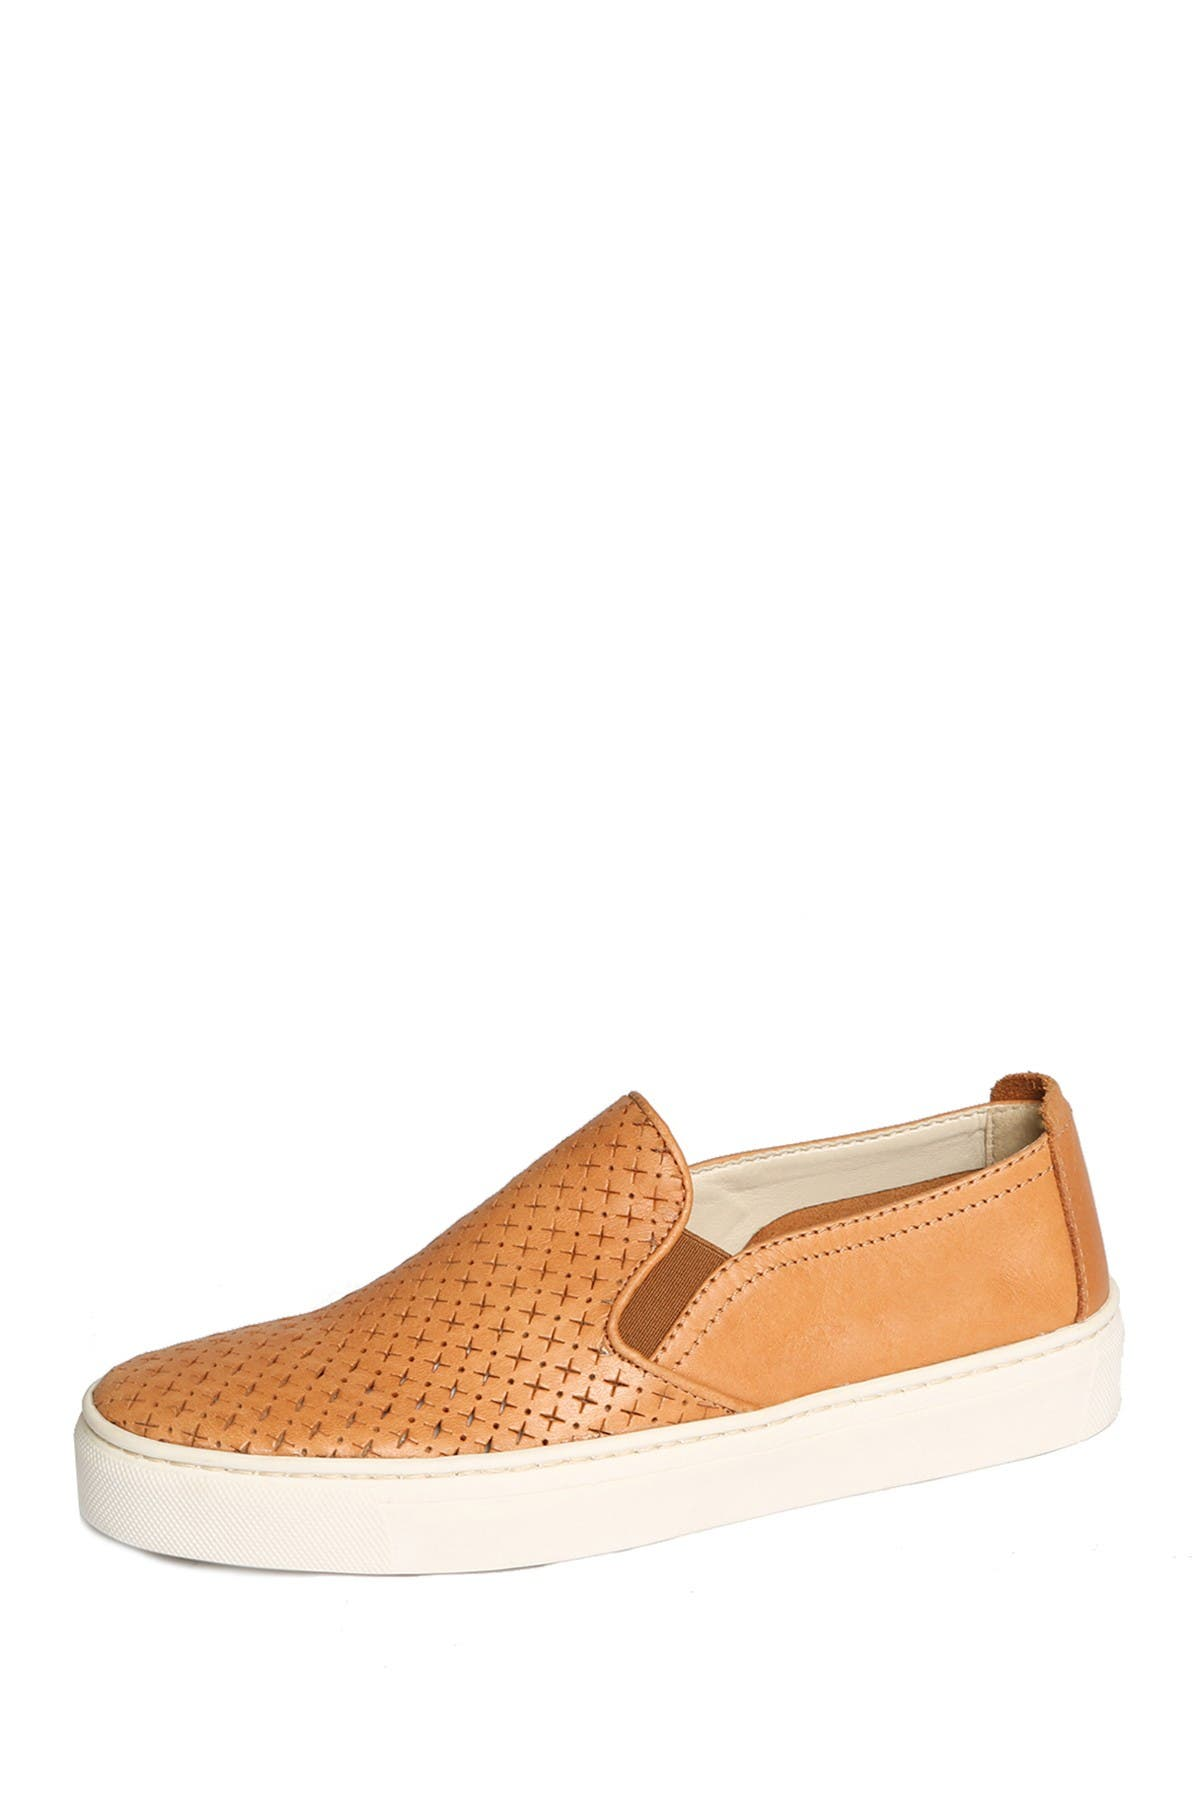 Image of THE FLEXX Stella Perforated Slip-On Sneaker